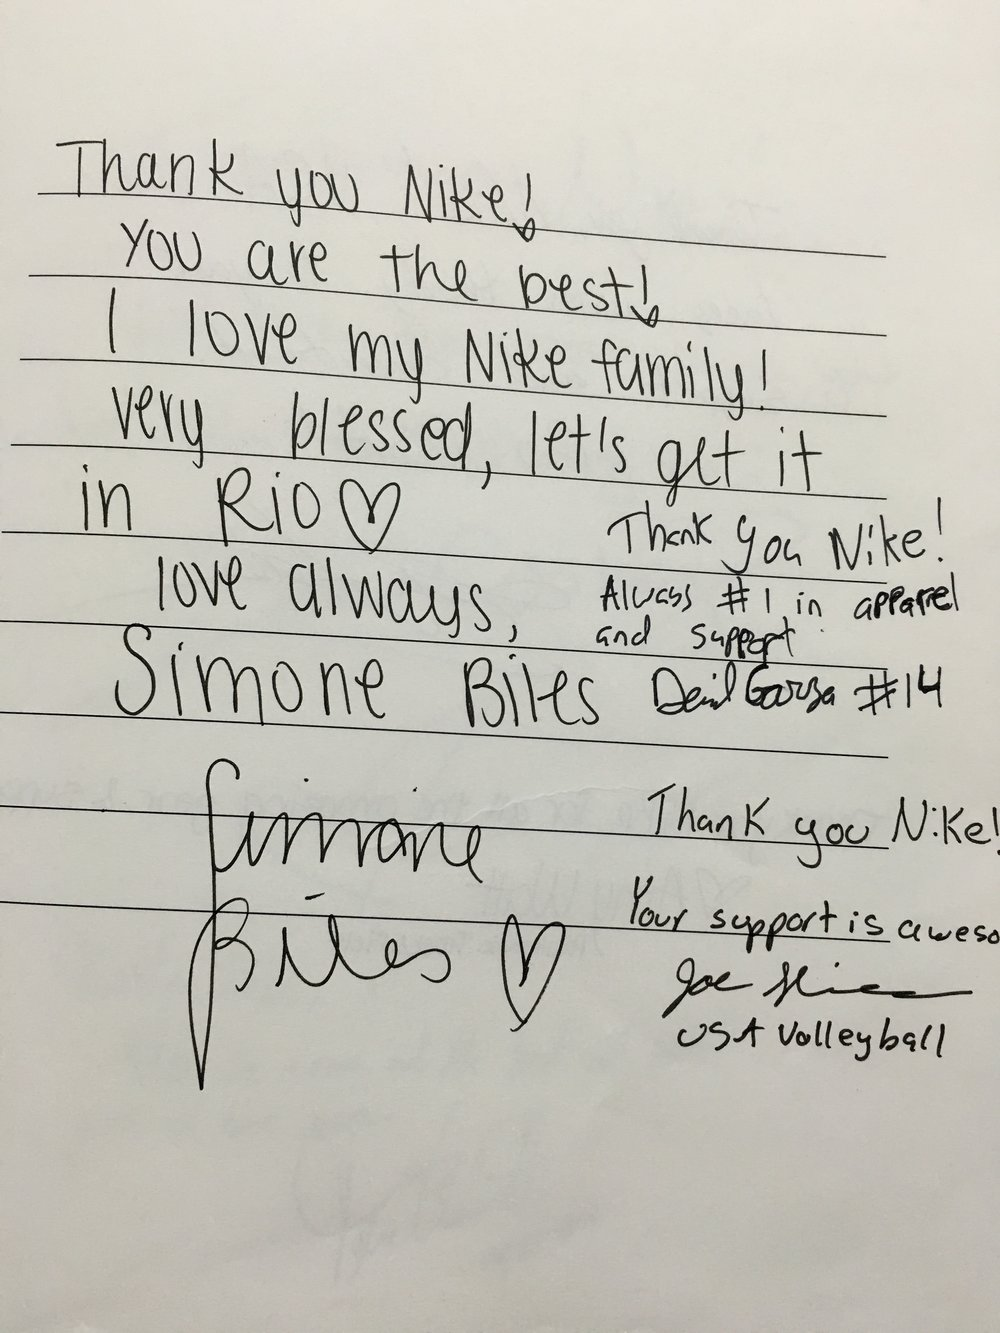 I had to of course take some pictures of some other Thank You's in the Nike Memory Book.  Here is one from Simone Biles Olympic gymnast.  I find it comical that other athletes tried to squeeze their message right next to Simone's just to get a little attention.  BTW, there were plenty of empty pages :)